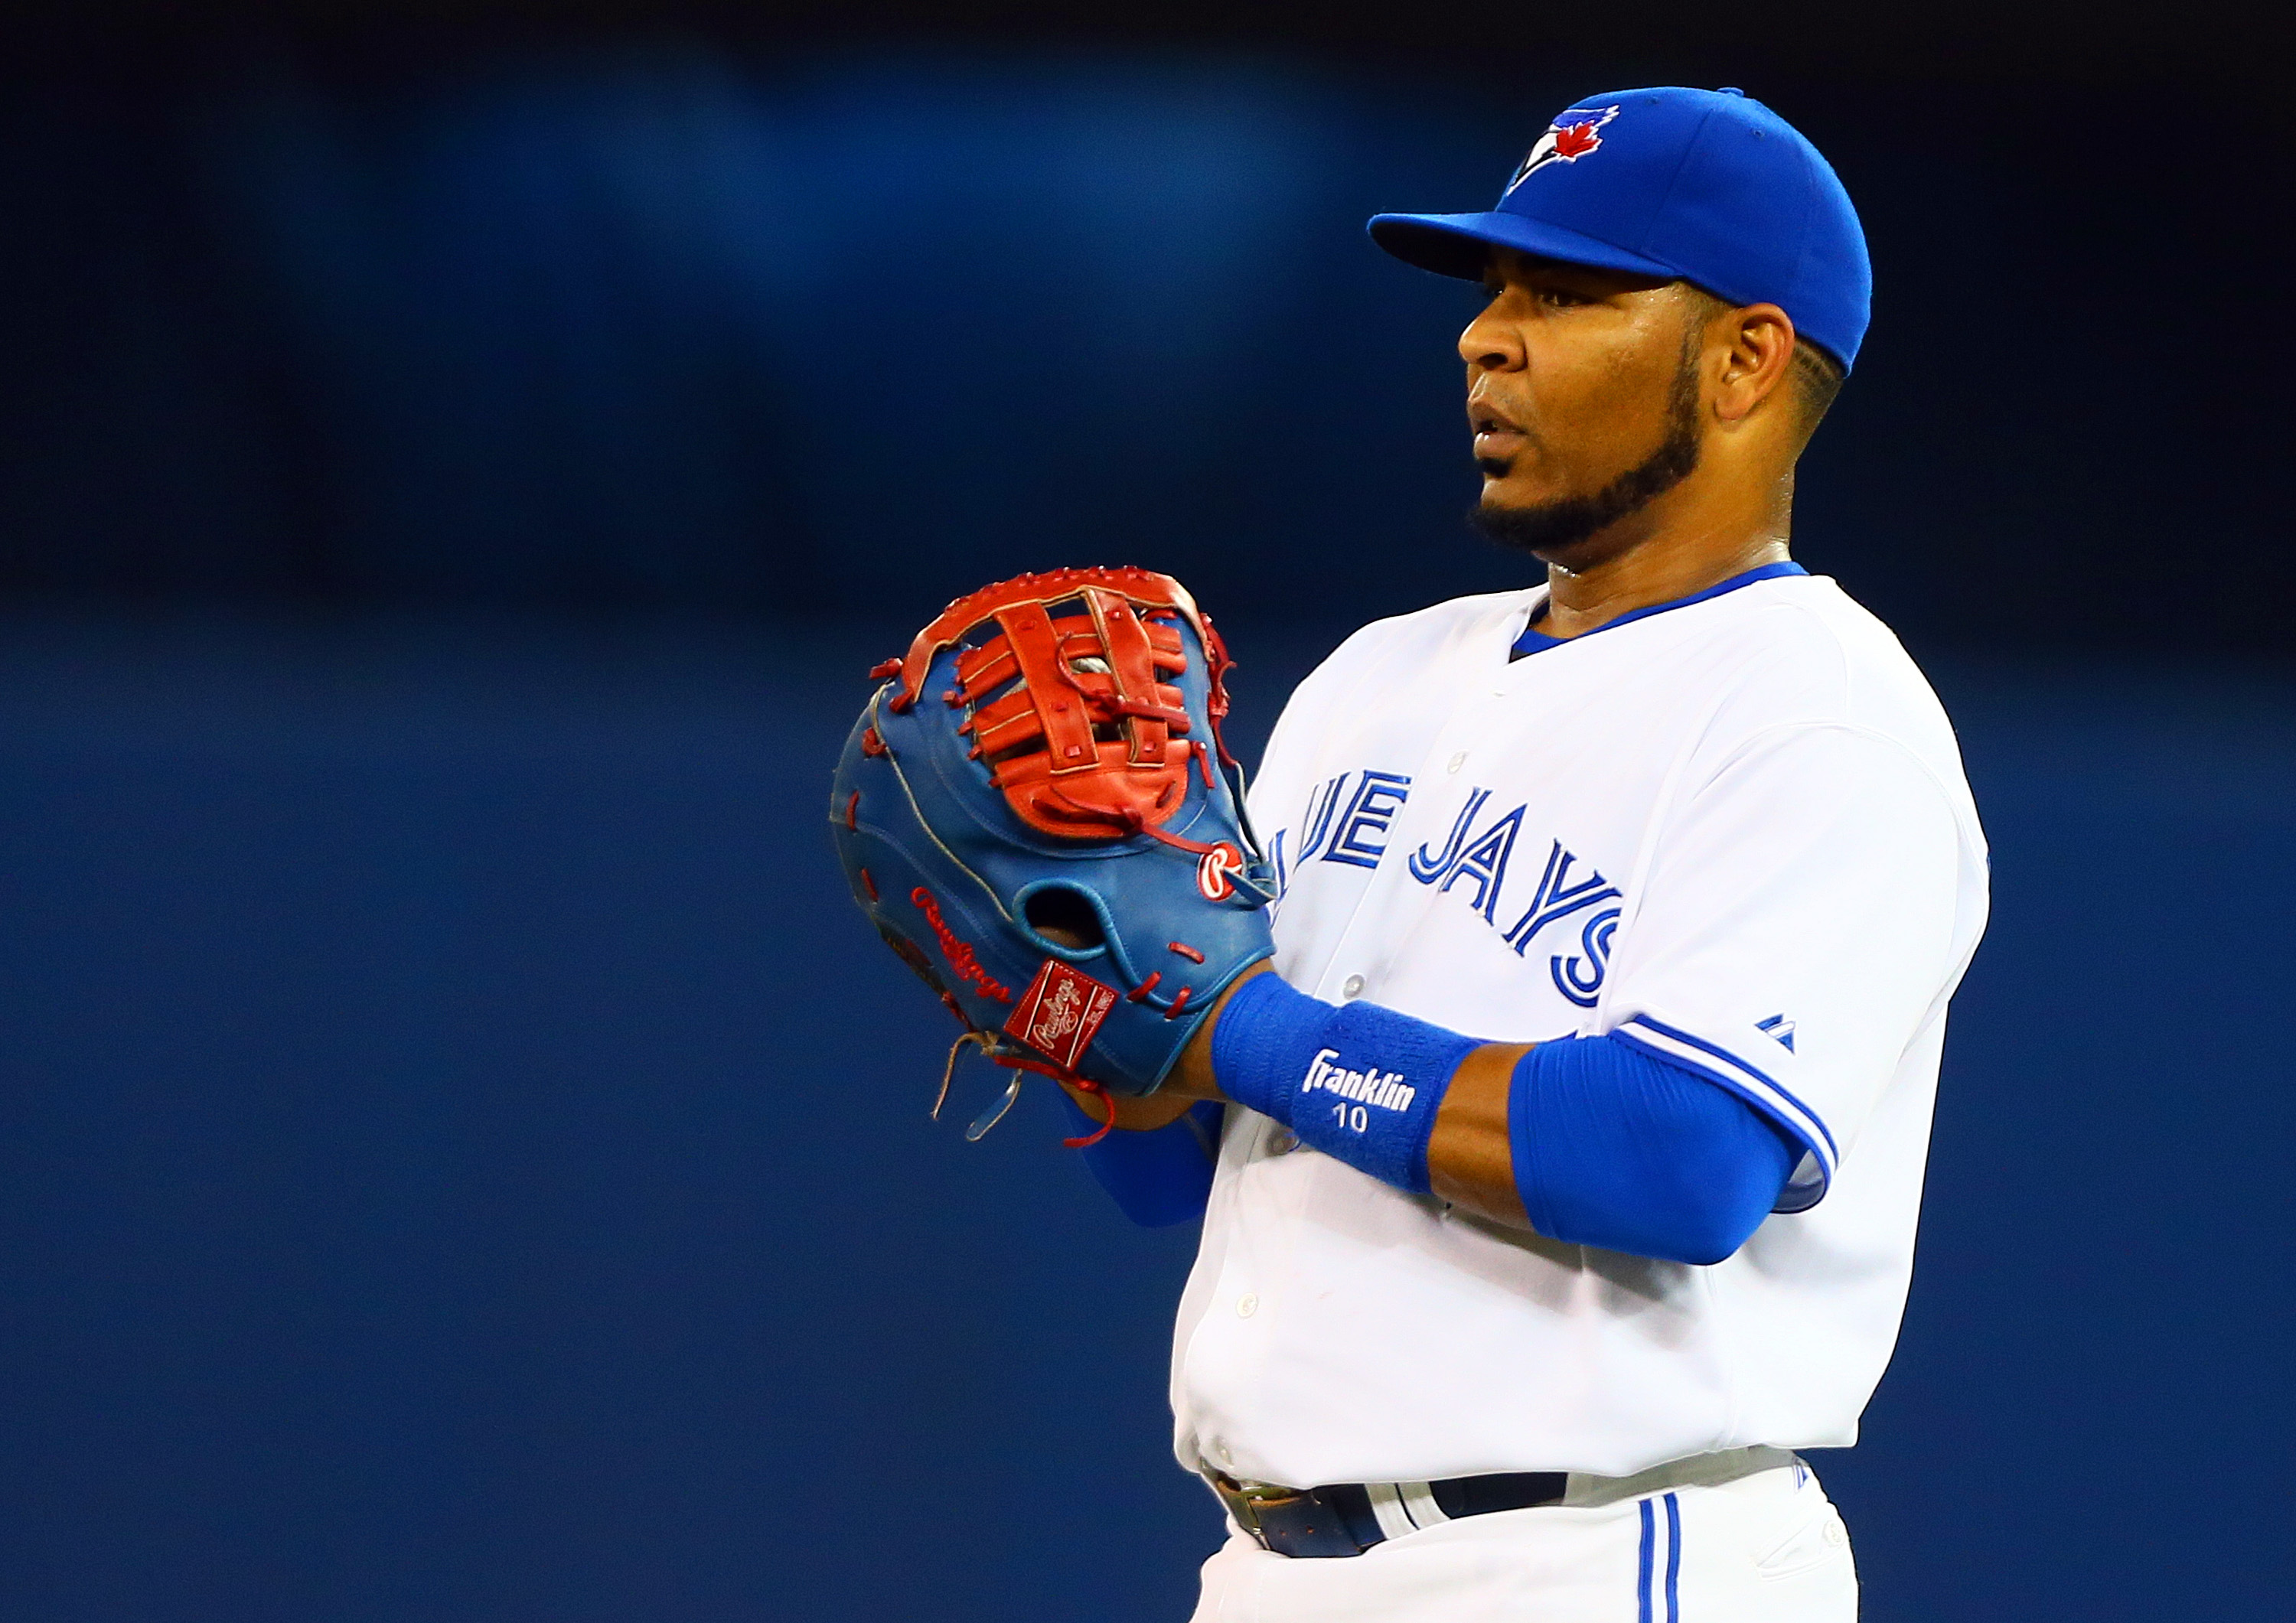 Edwin Encarnacion has 26 homers and 70 RBI for the Blue Jays.